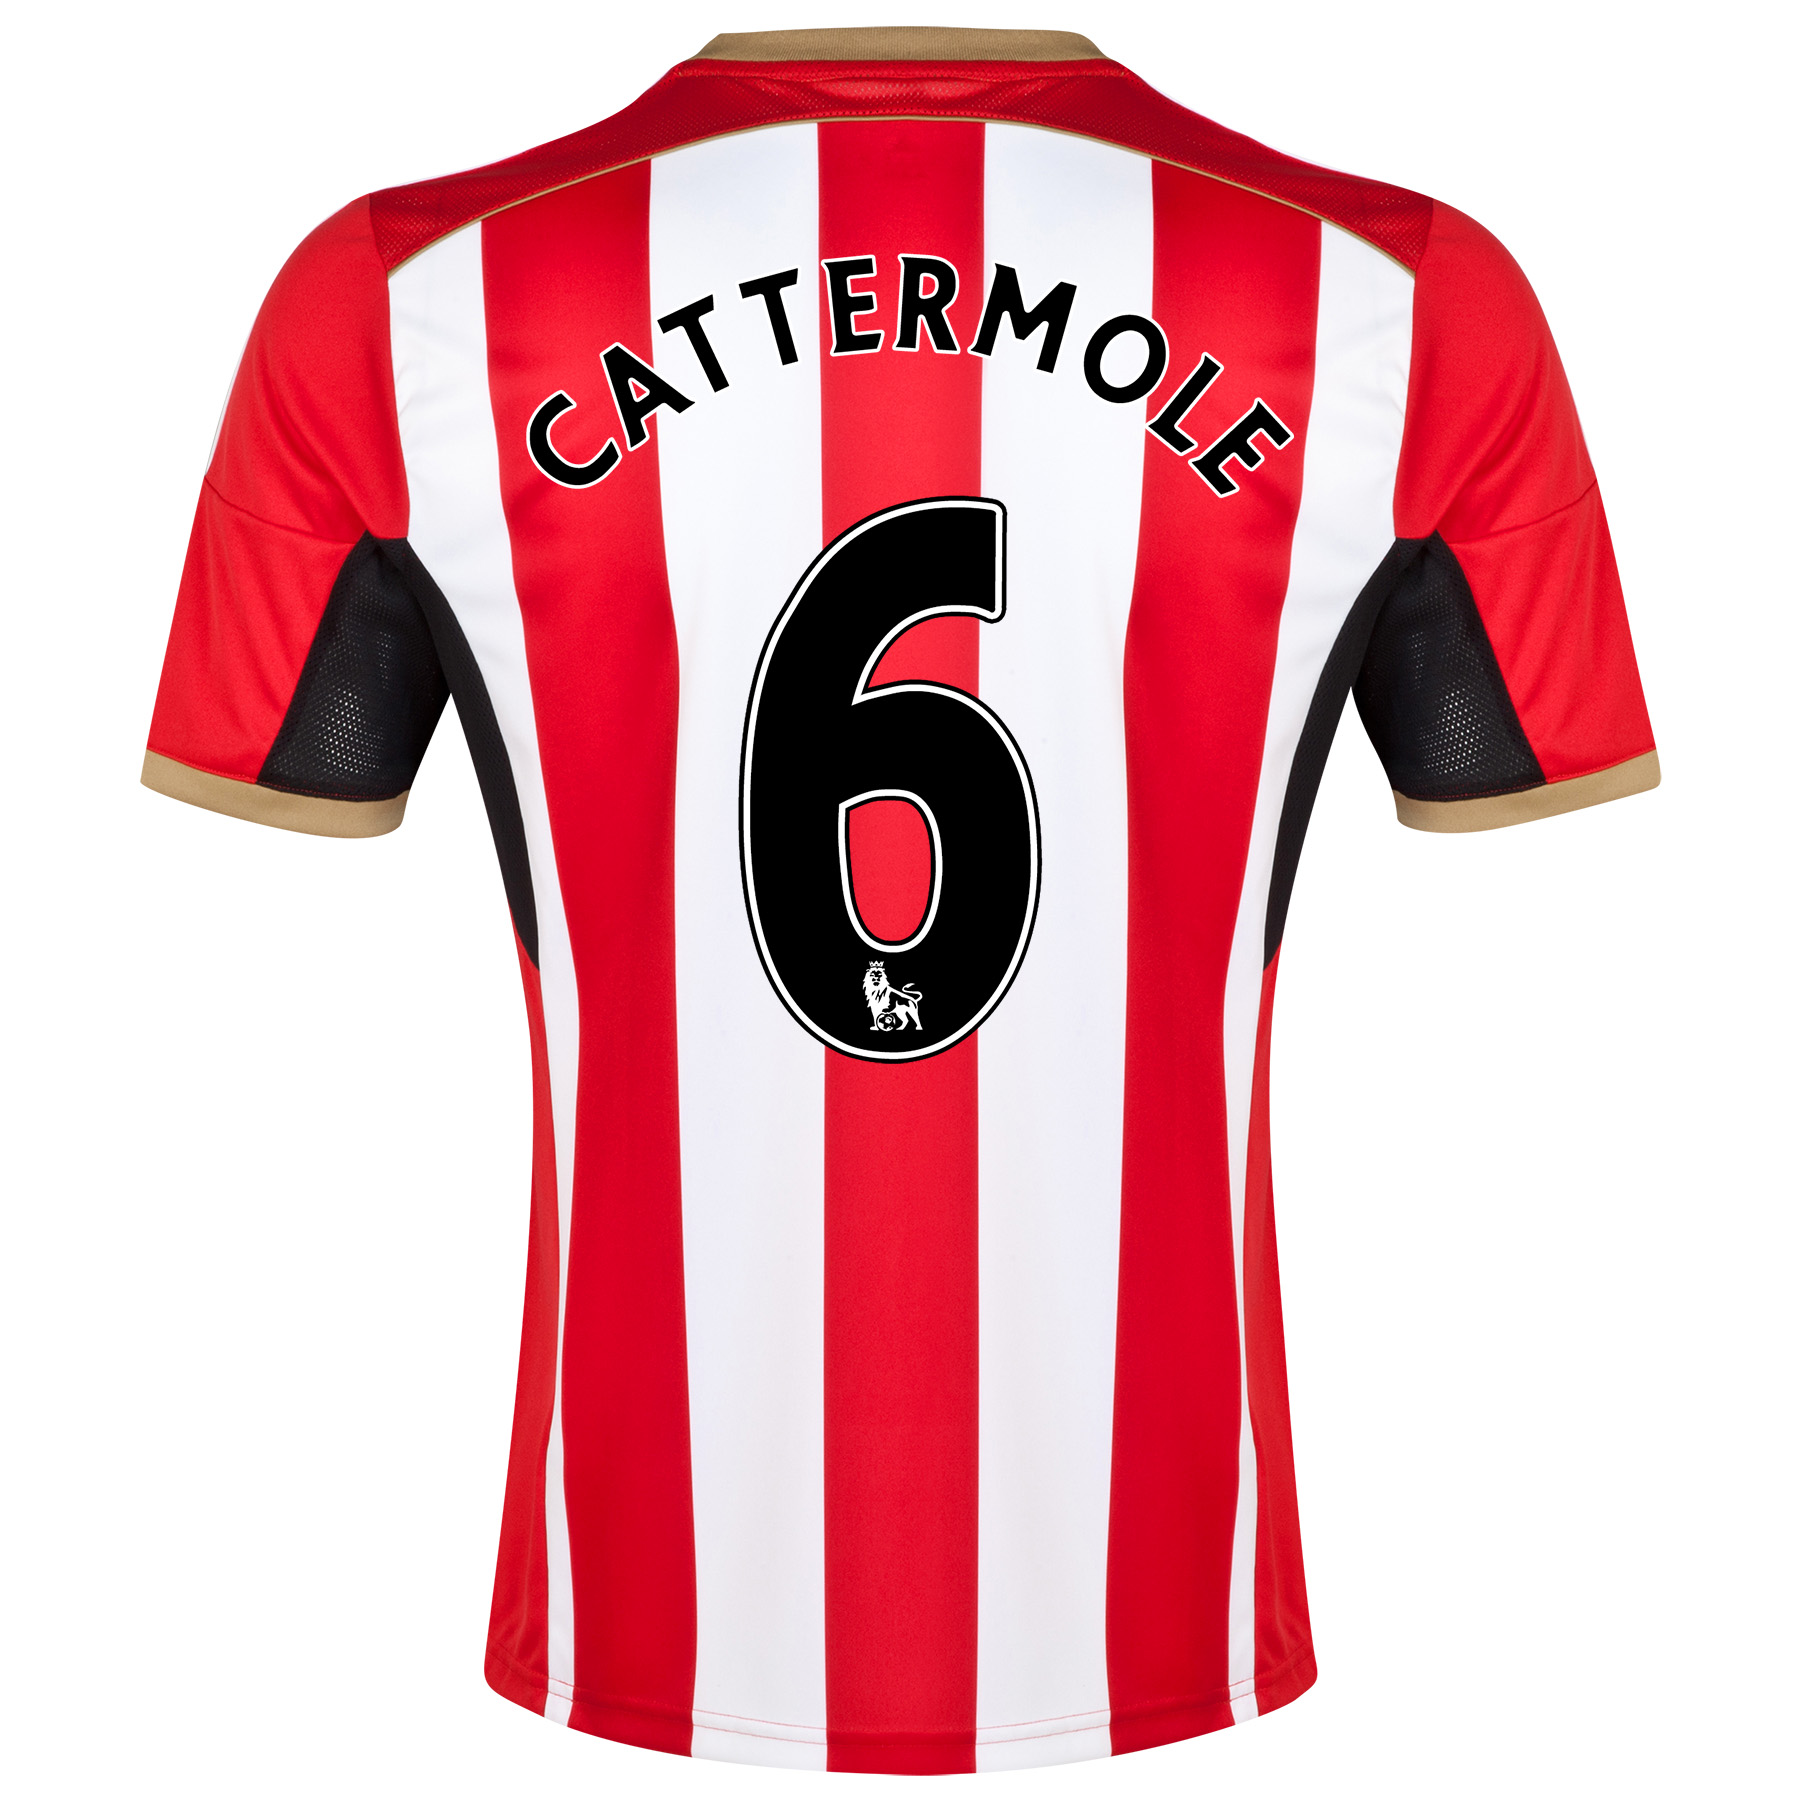 Sunderland Home Shirt 2014/15 - Junior Red with Cattermole 6 printing